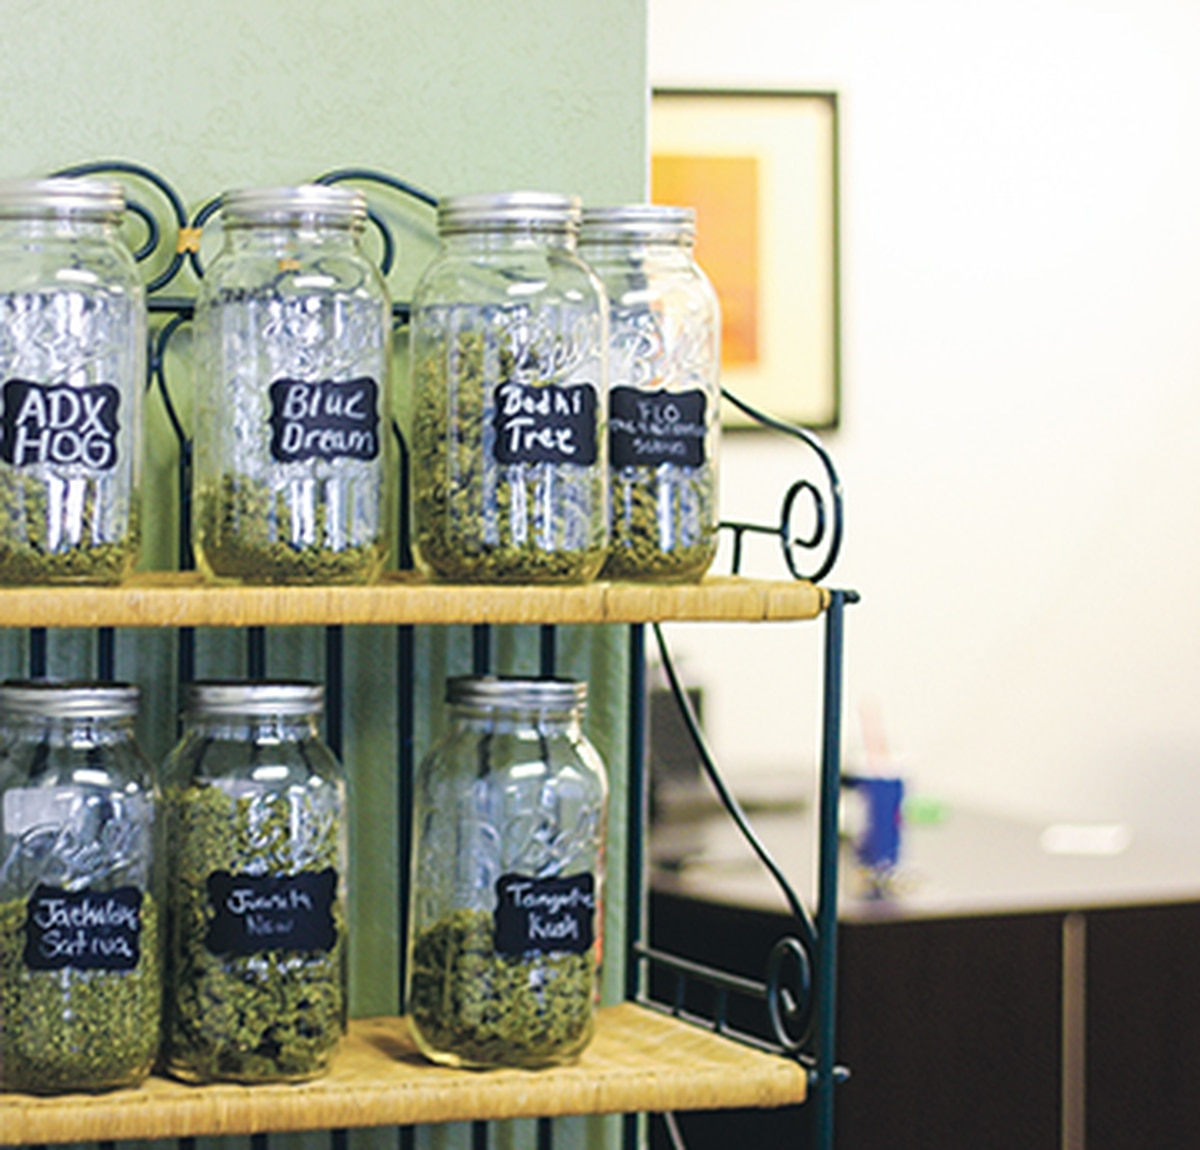 Ultra Health's Santa Fe dispensary is one of five locations in New Mexico managed by the Arizona-based company.